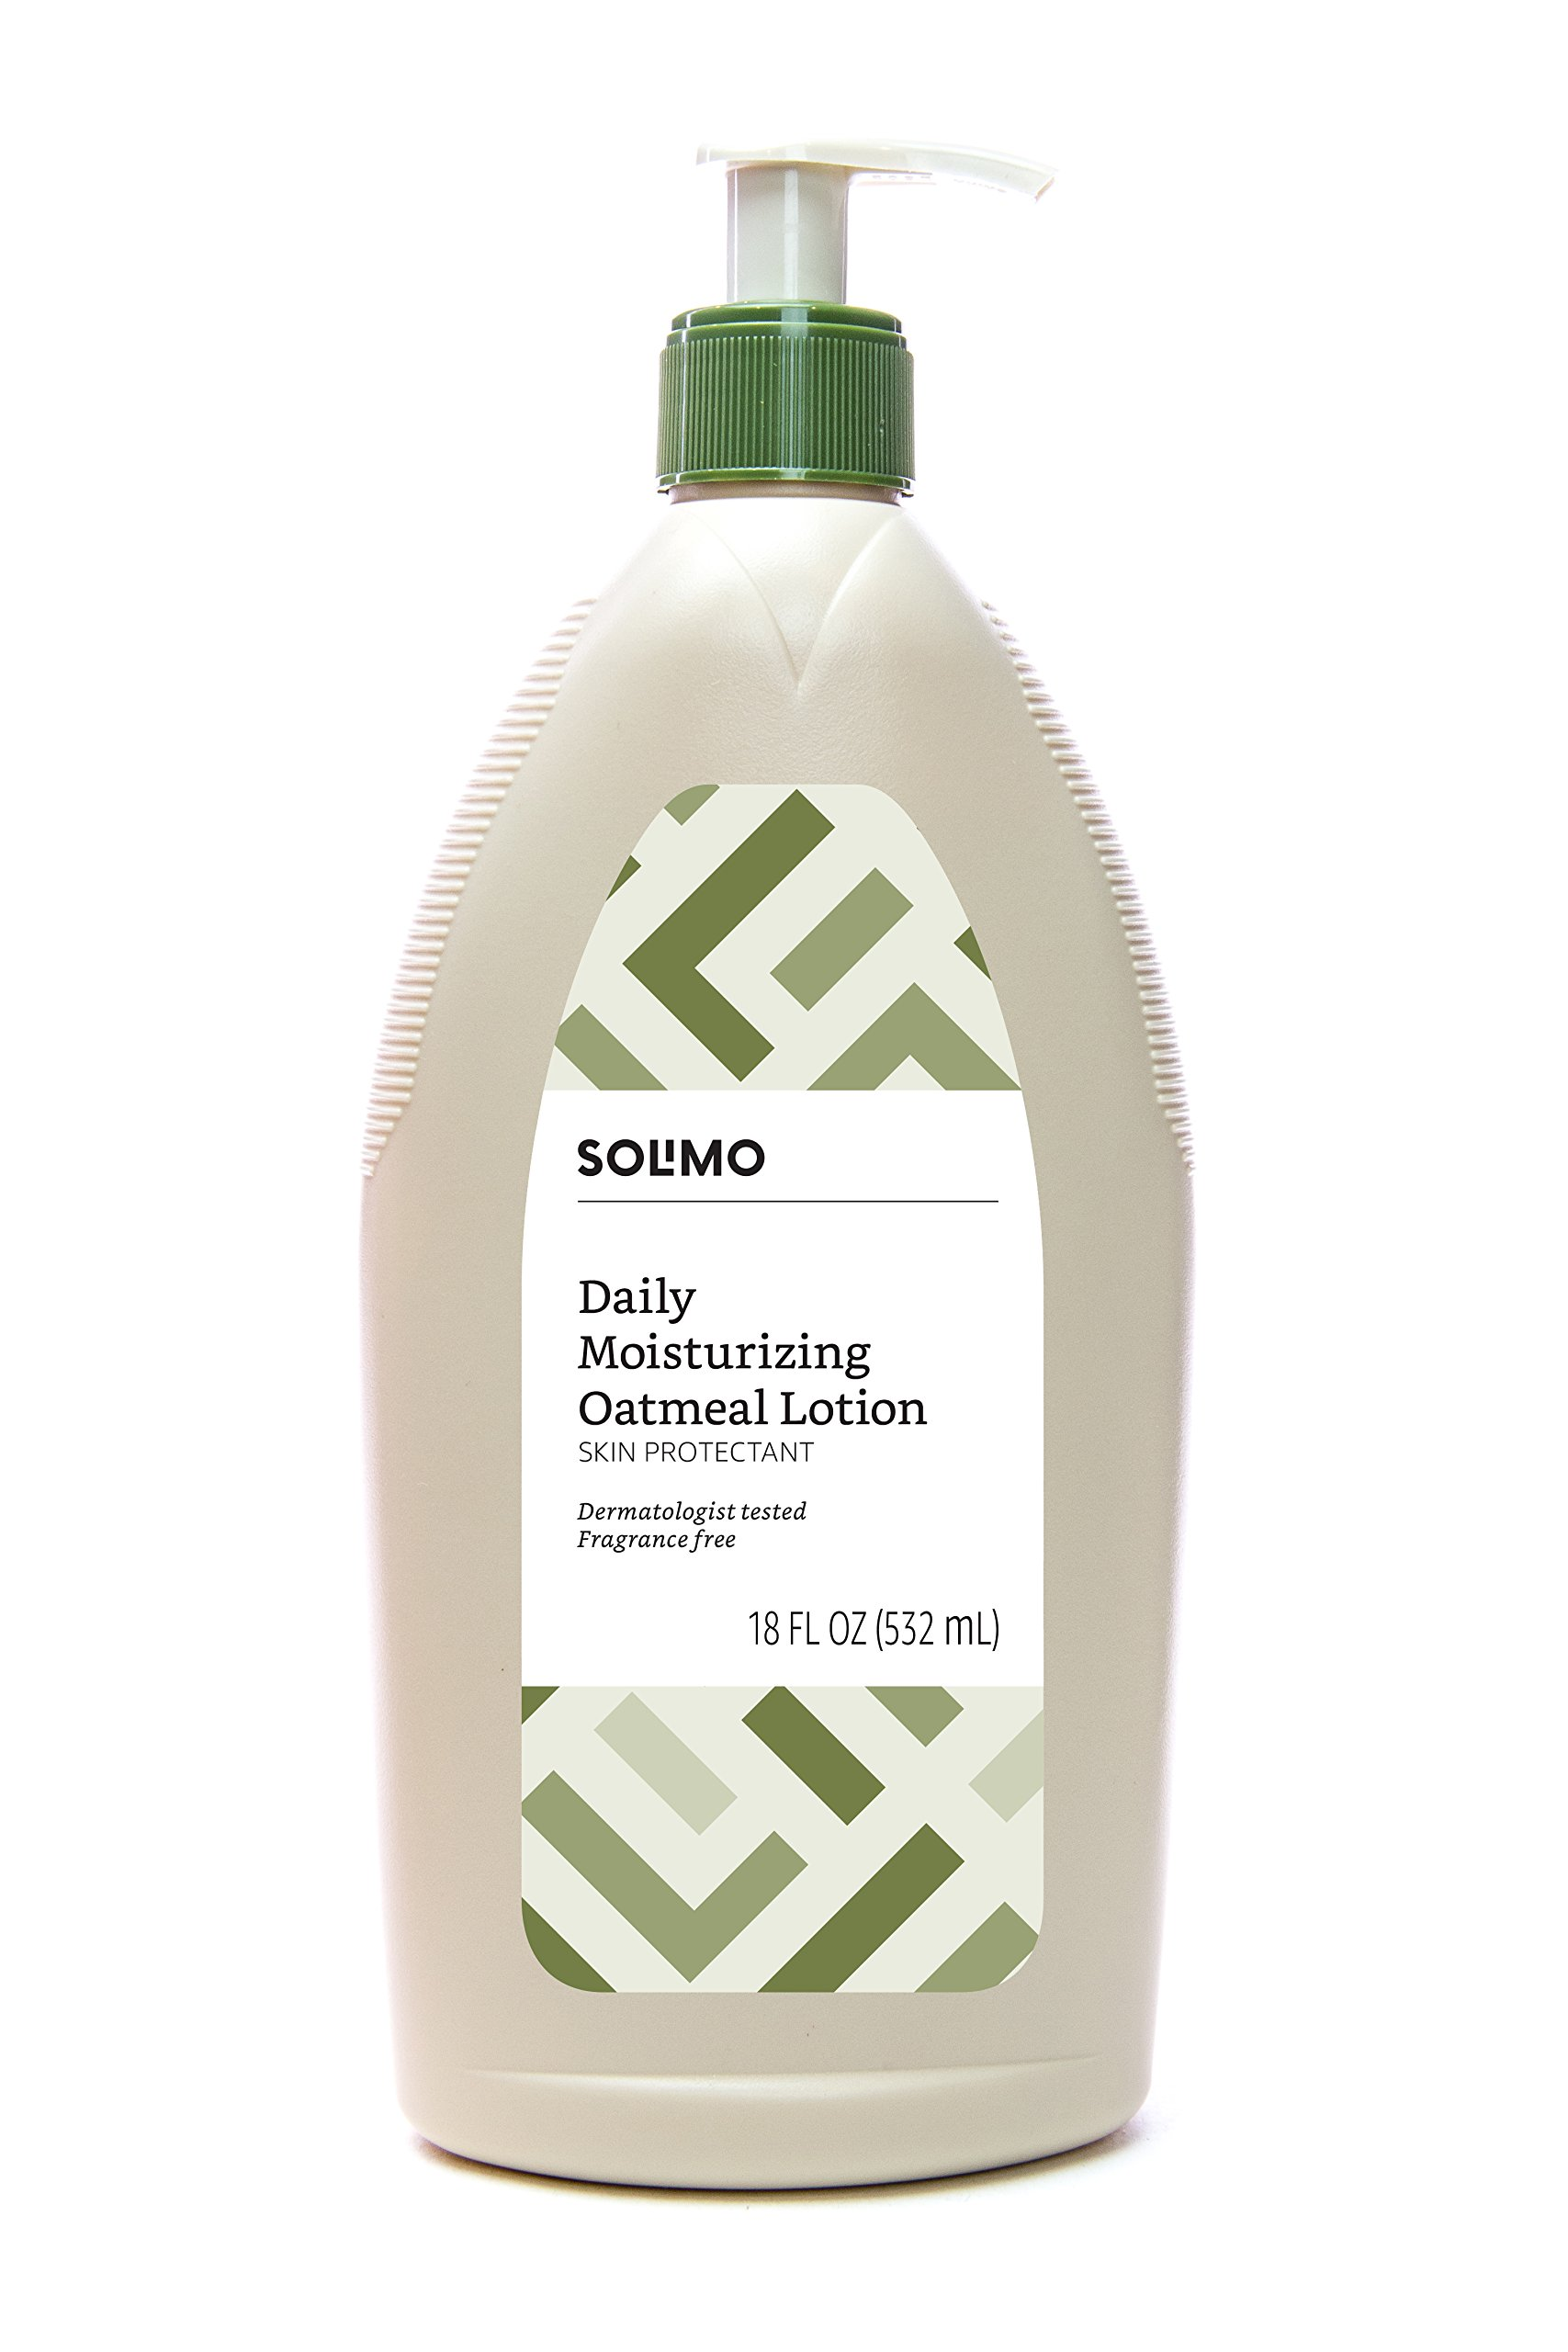 Amazon Brand - Solimo Daily Moisturizing Oatmeal Lotion, Fragrance-free, 18 Fluid Ounce (Pack of 6) by Solimo (Image #3)